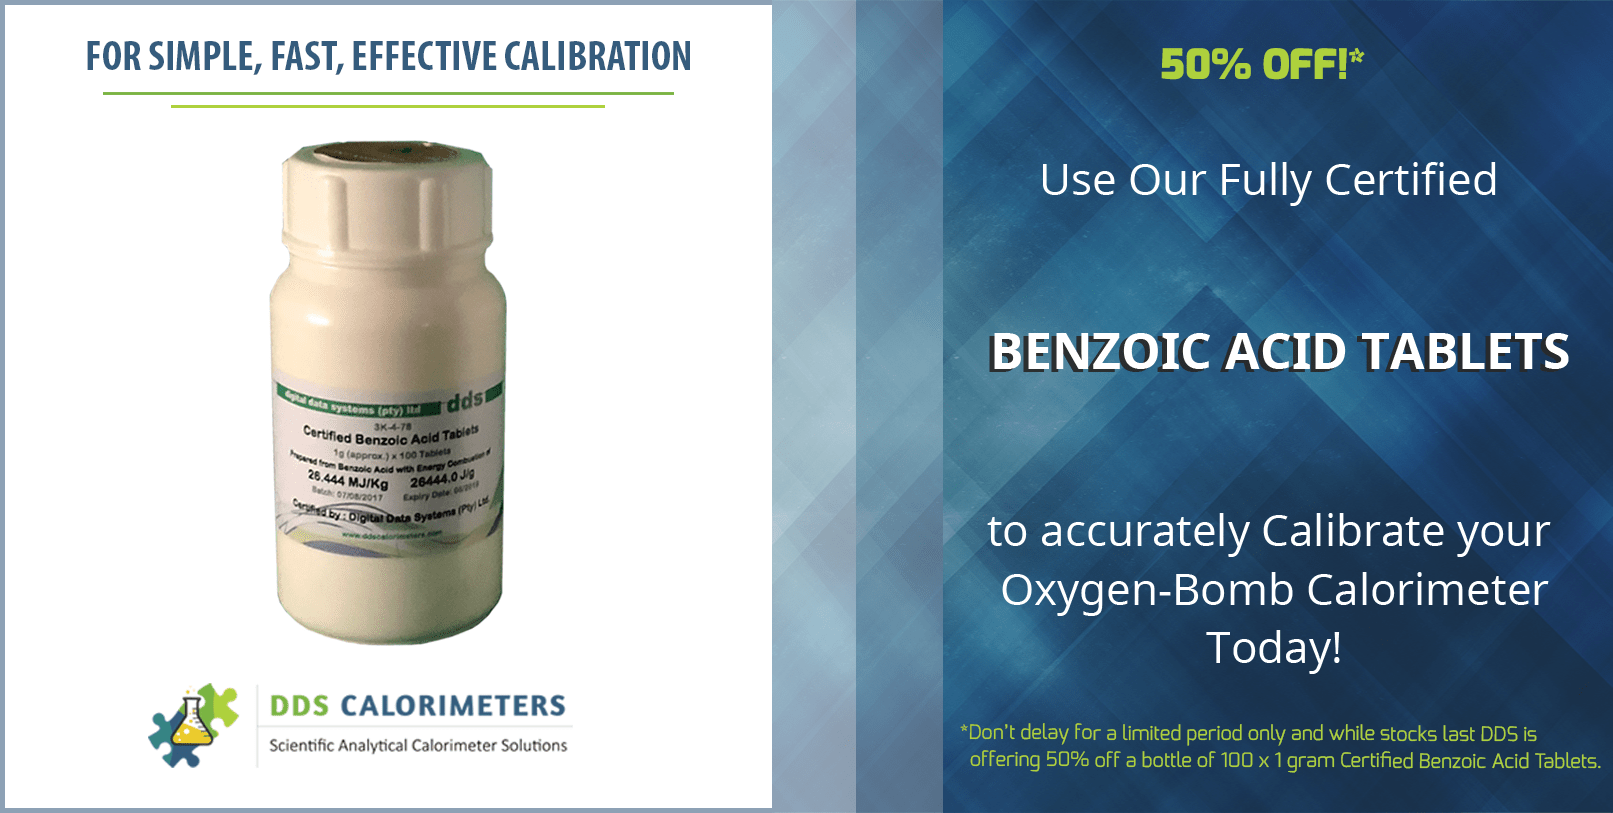 Certified Benzoic Acid Tablets - Half Price 50% Discount